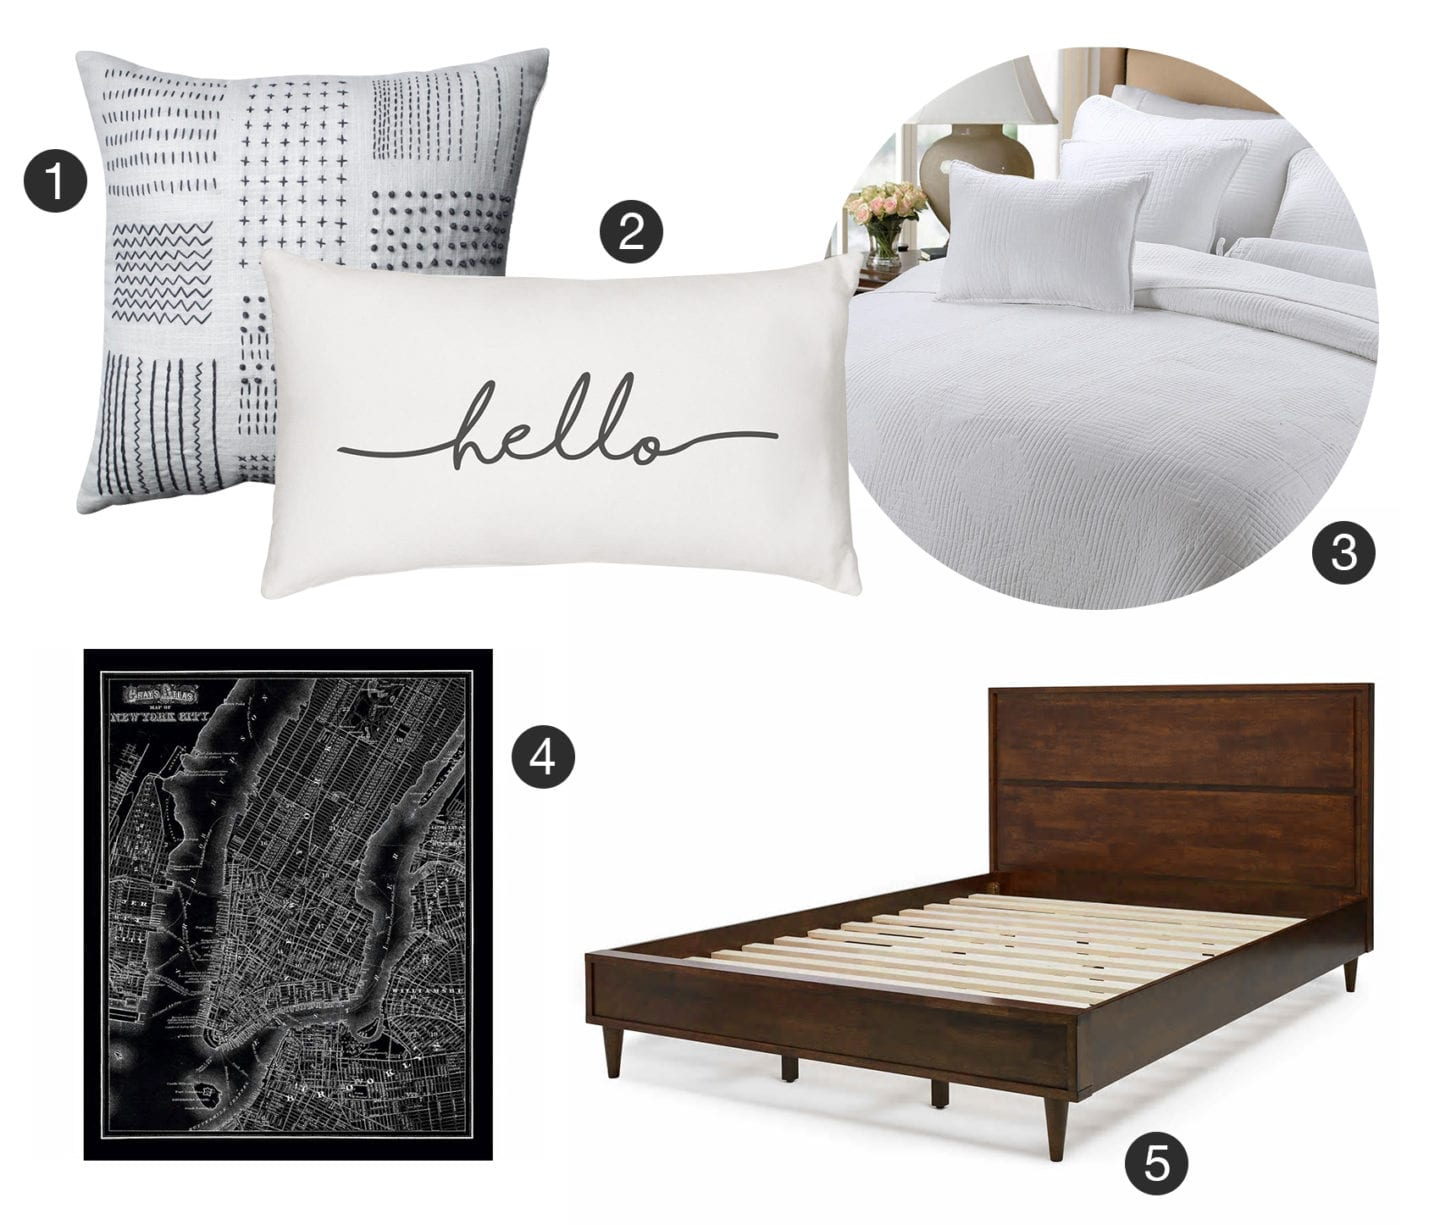 Collage of modern bedroom product and bedding